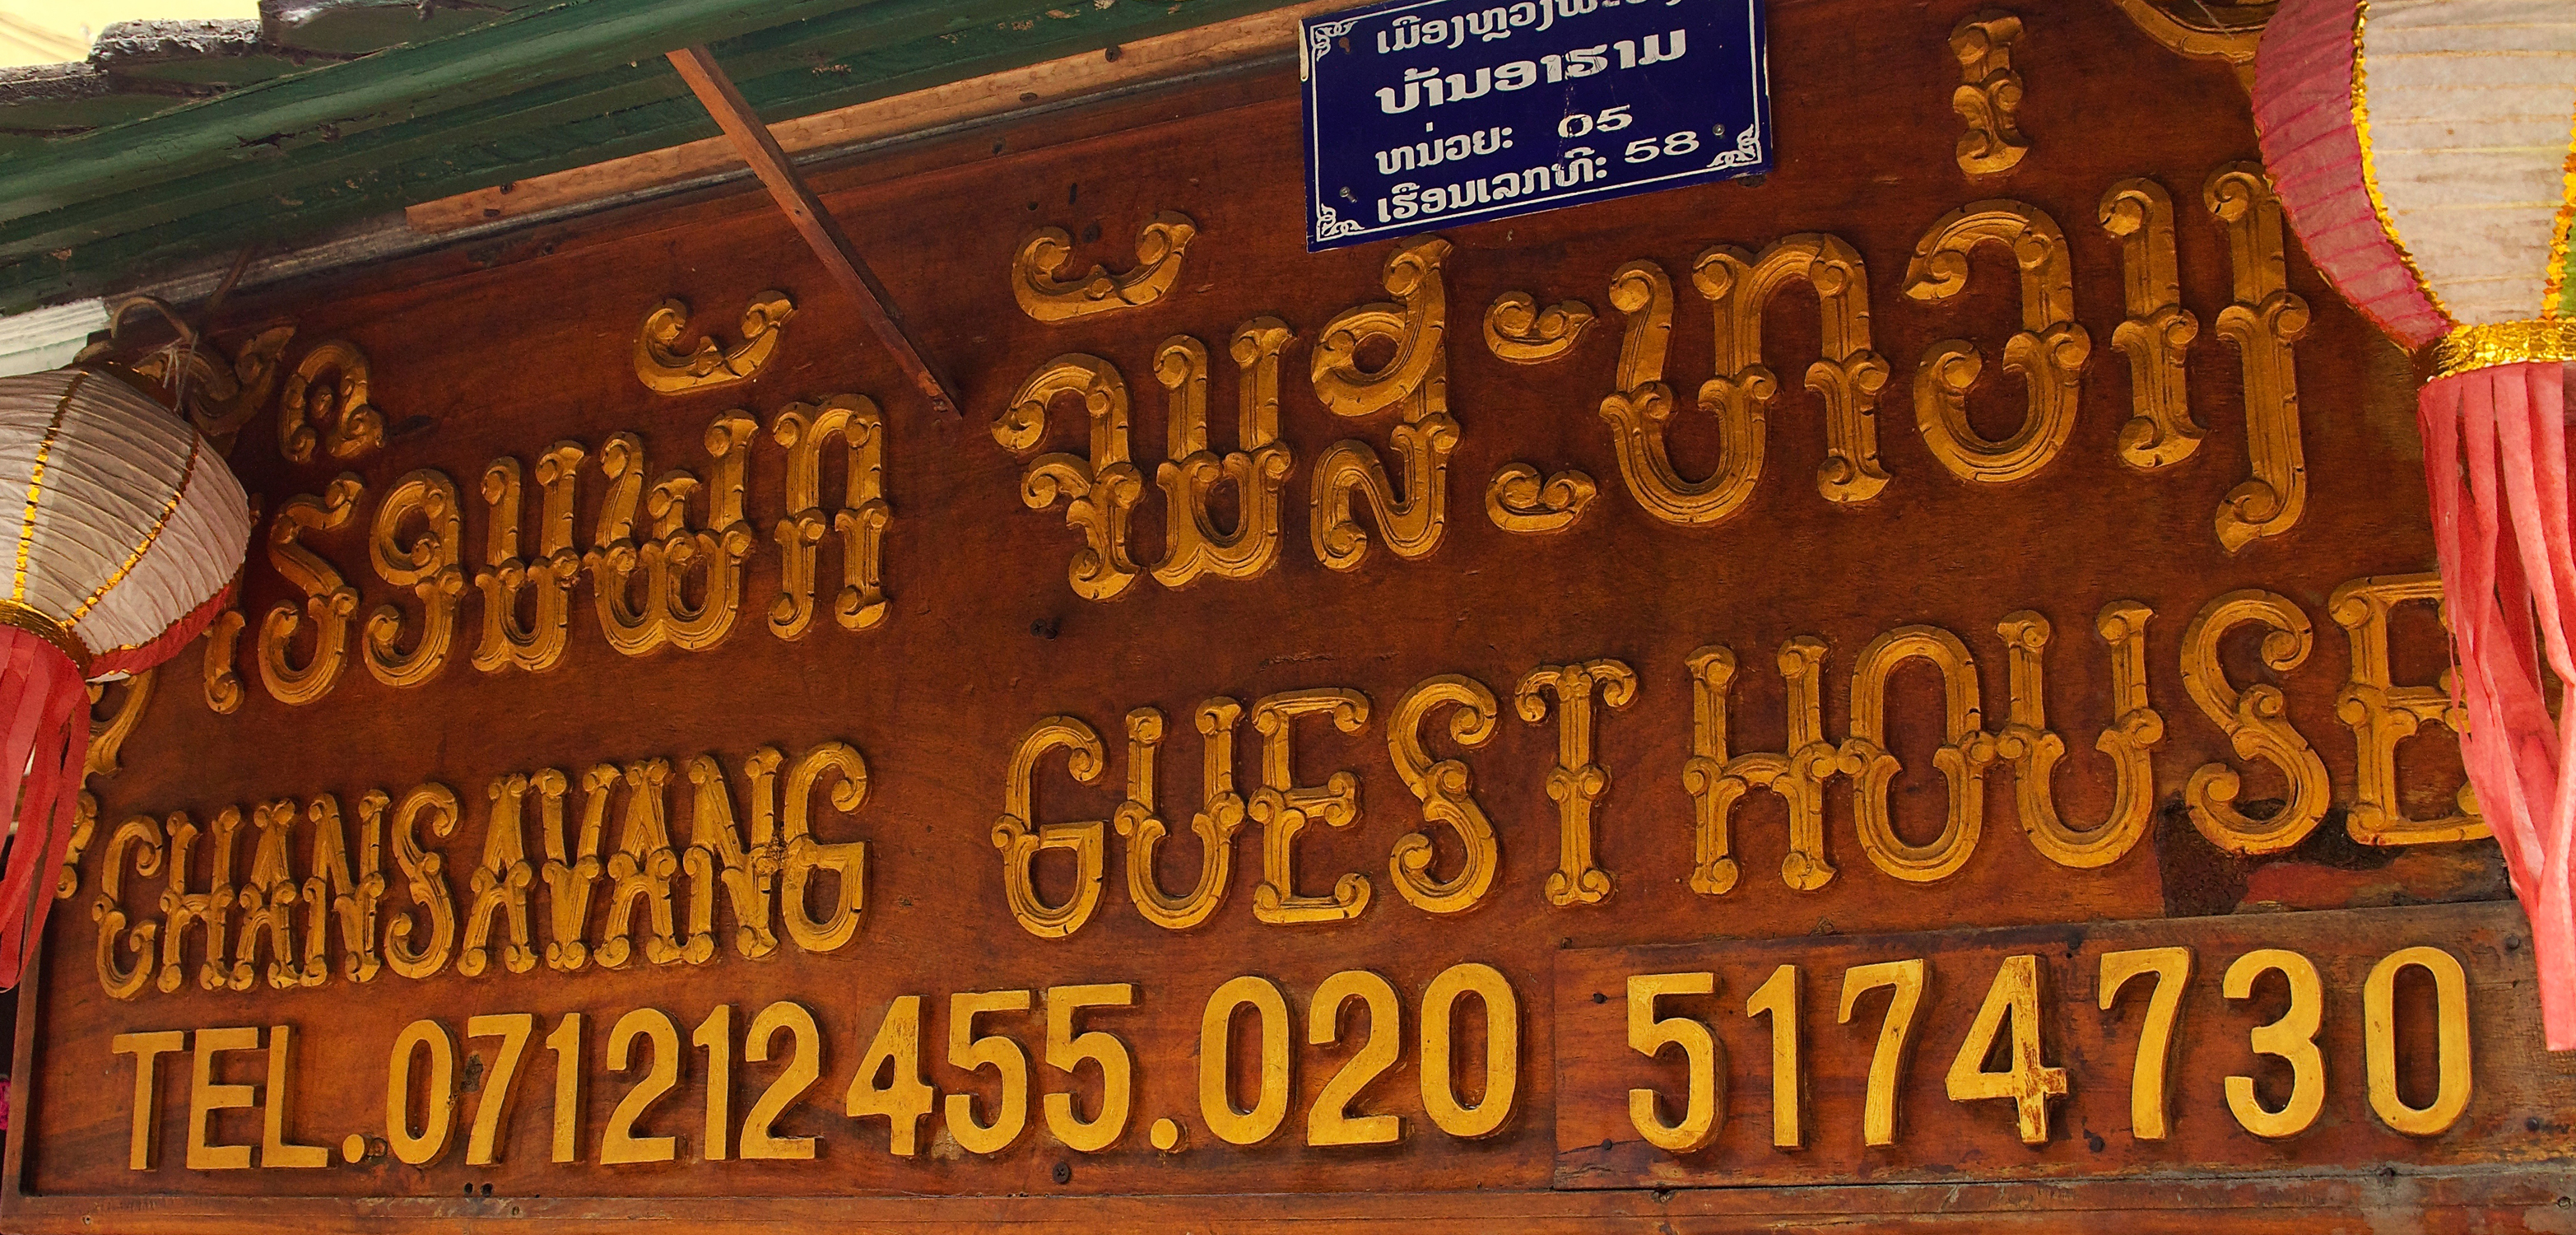 Chansavang Guesthouse